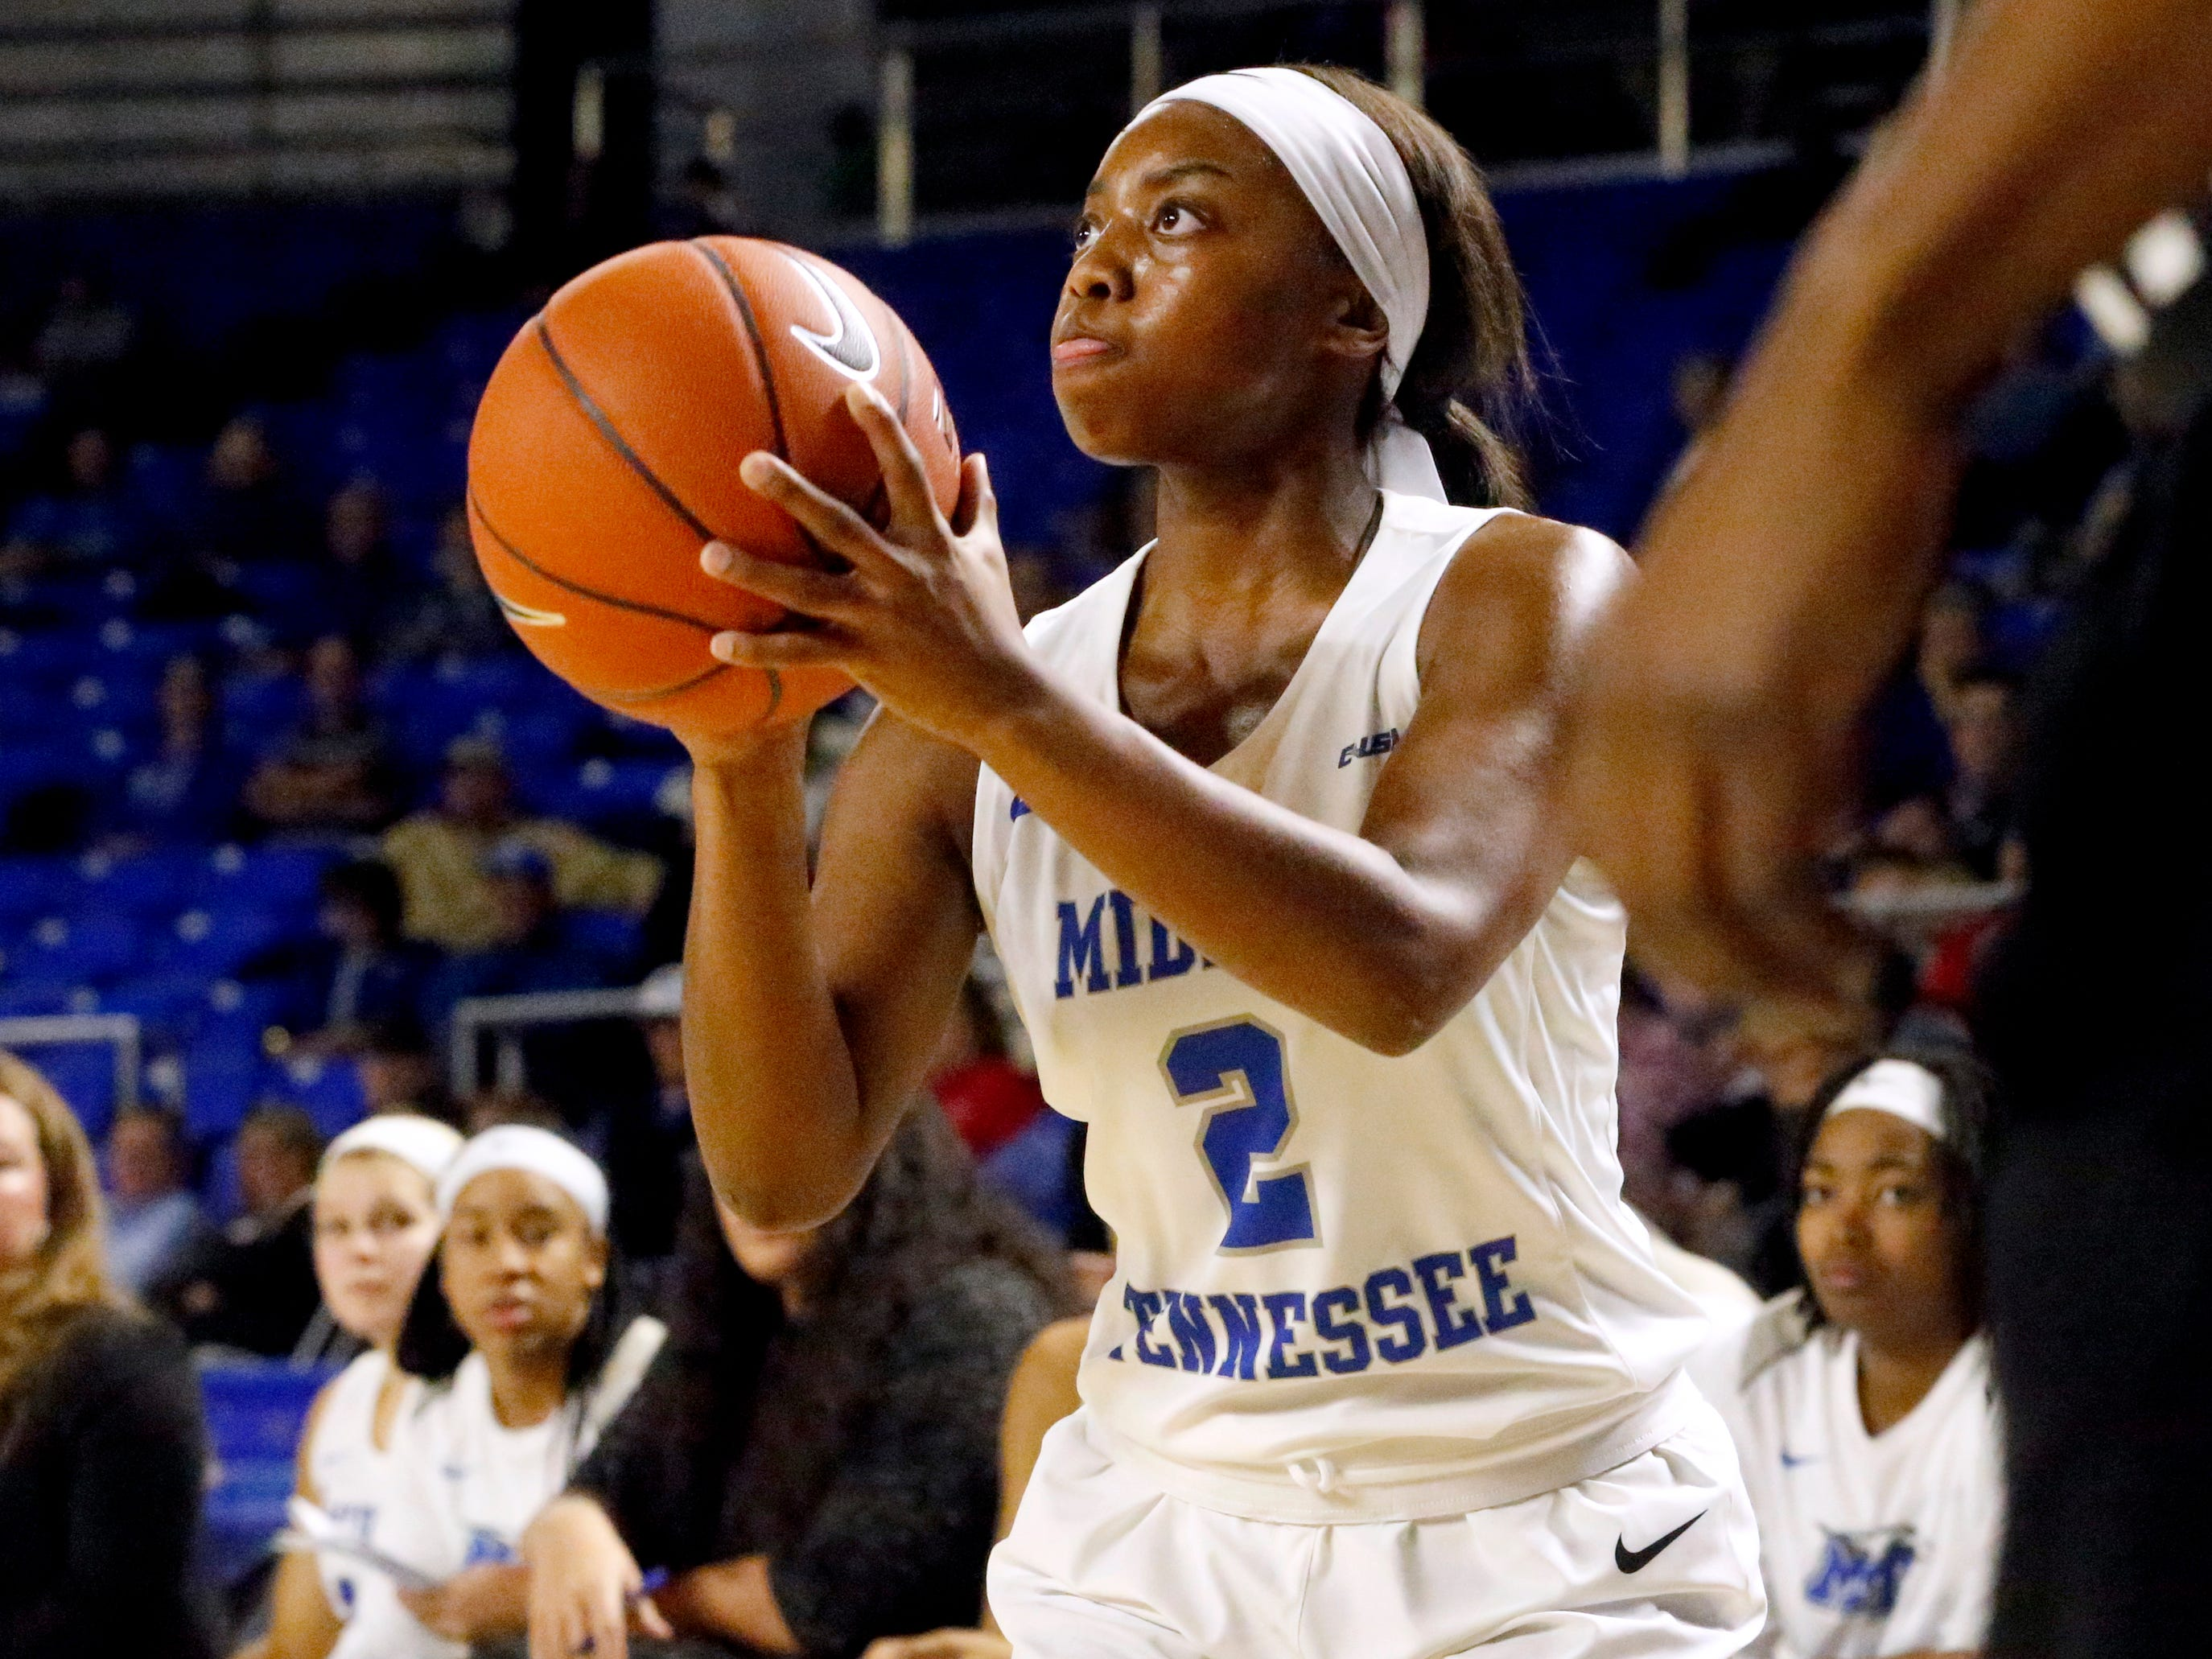 MTSU's guard Taylor Sutton (2) tries for a three point basket against Southern Miss on Thursday Jan. 10, 2019.